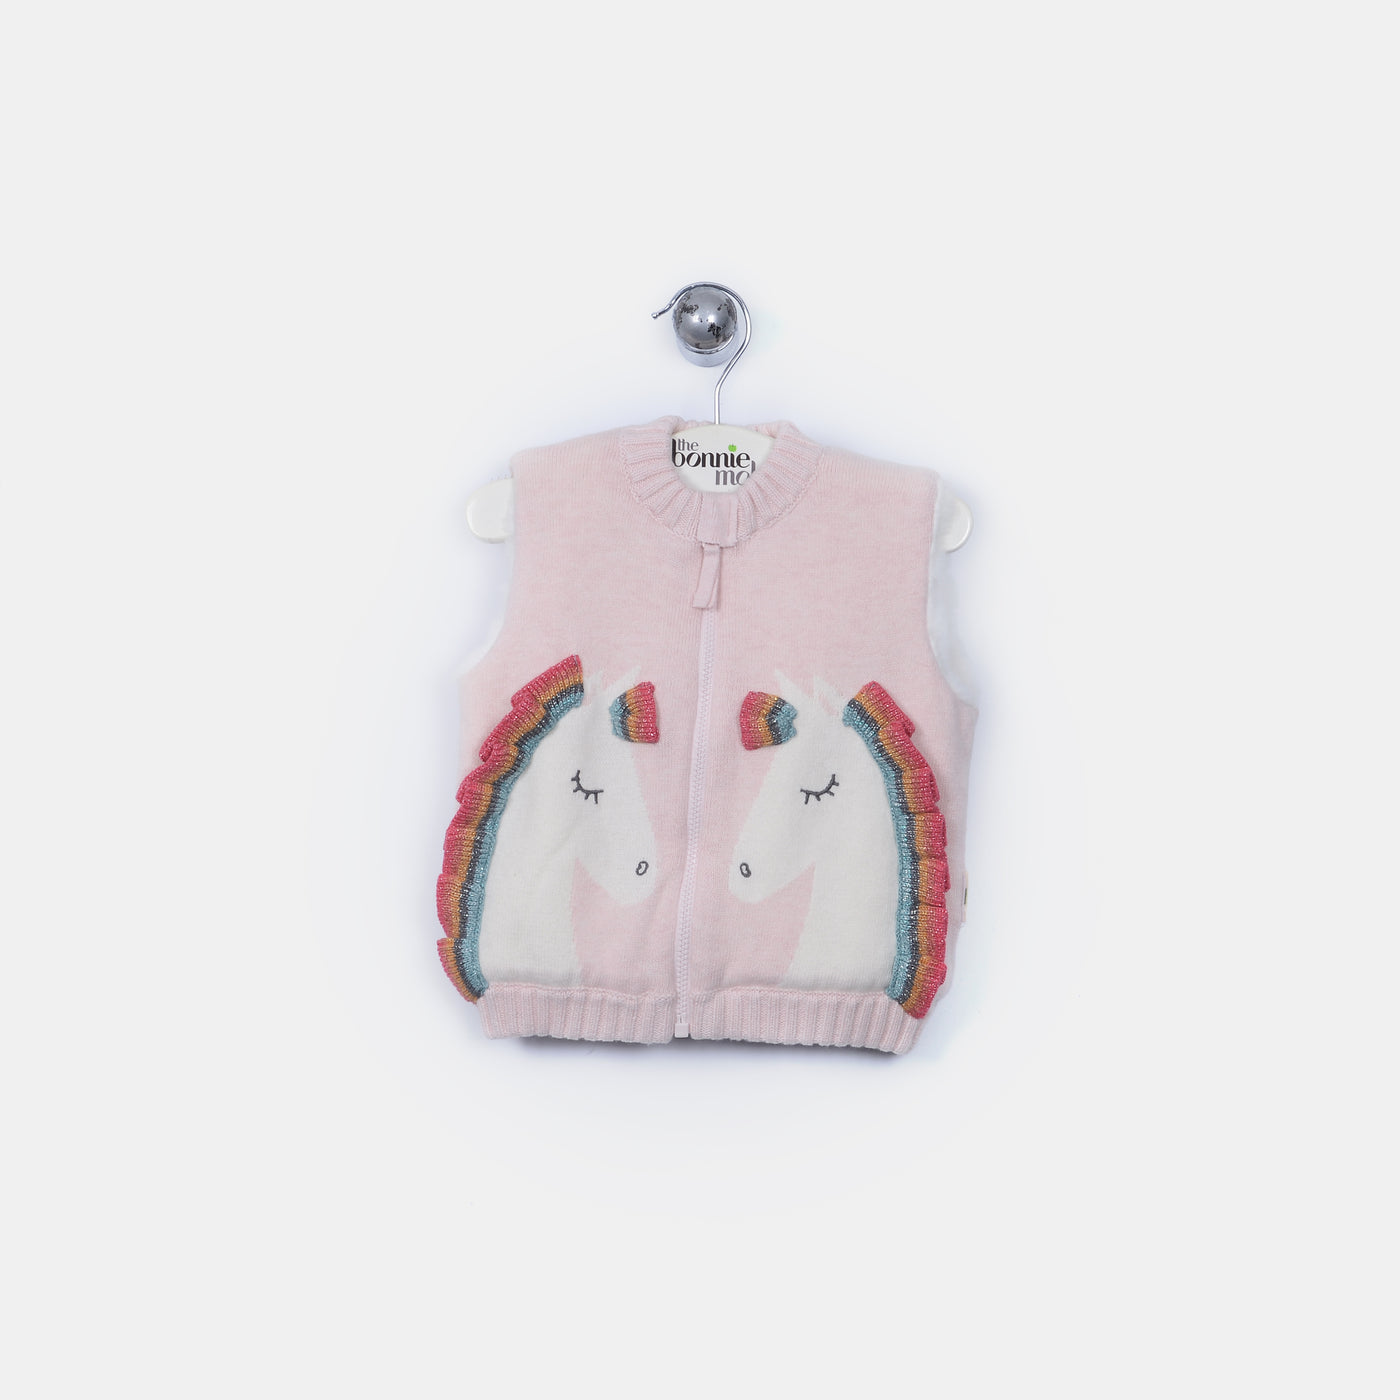 L-URI - Unicorn Rainbow Ruffle Lined Gilet - Kids Girl - Pink calico